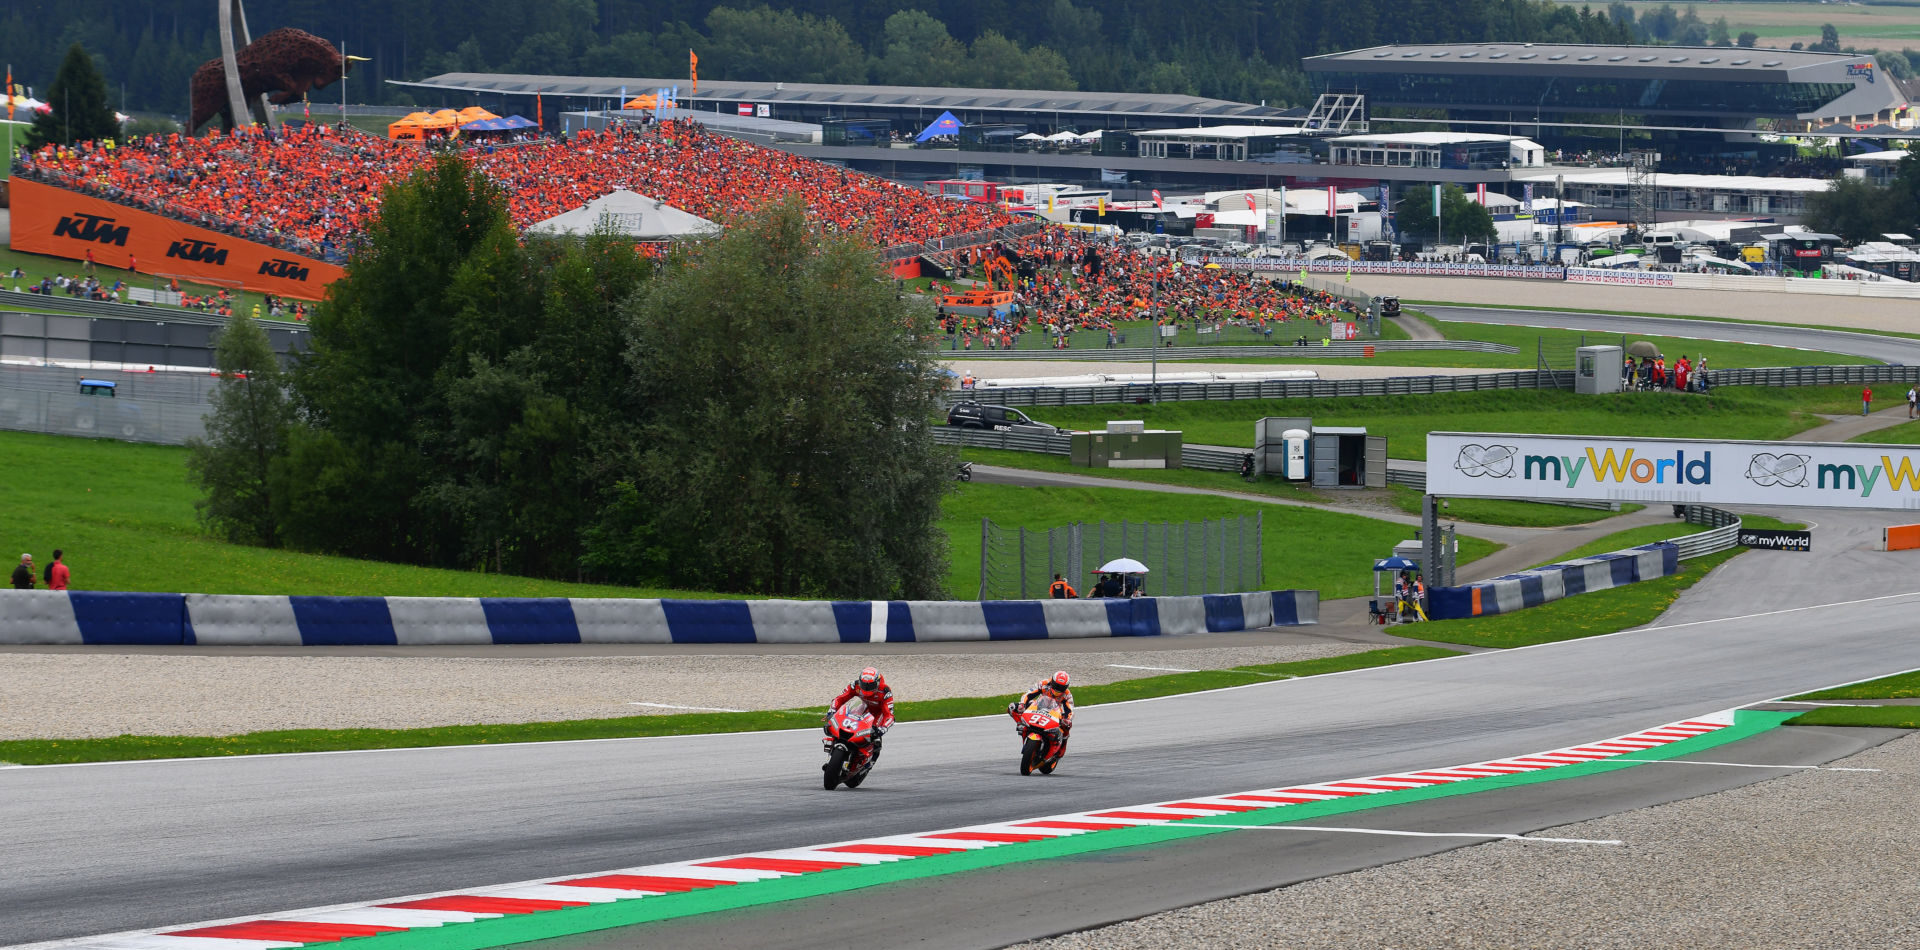 A scene from the MotoGP race at Red Bull Ring in 2019. Photo courtesy Michelin.